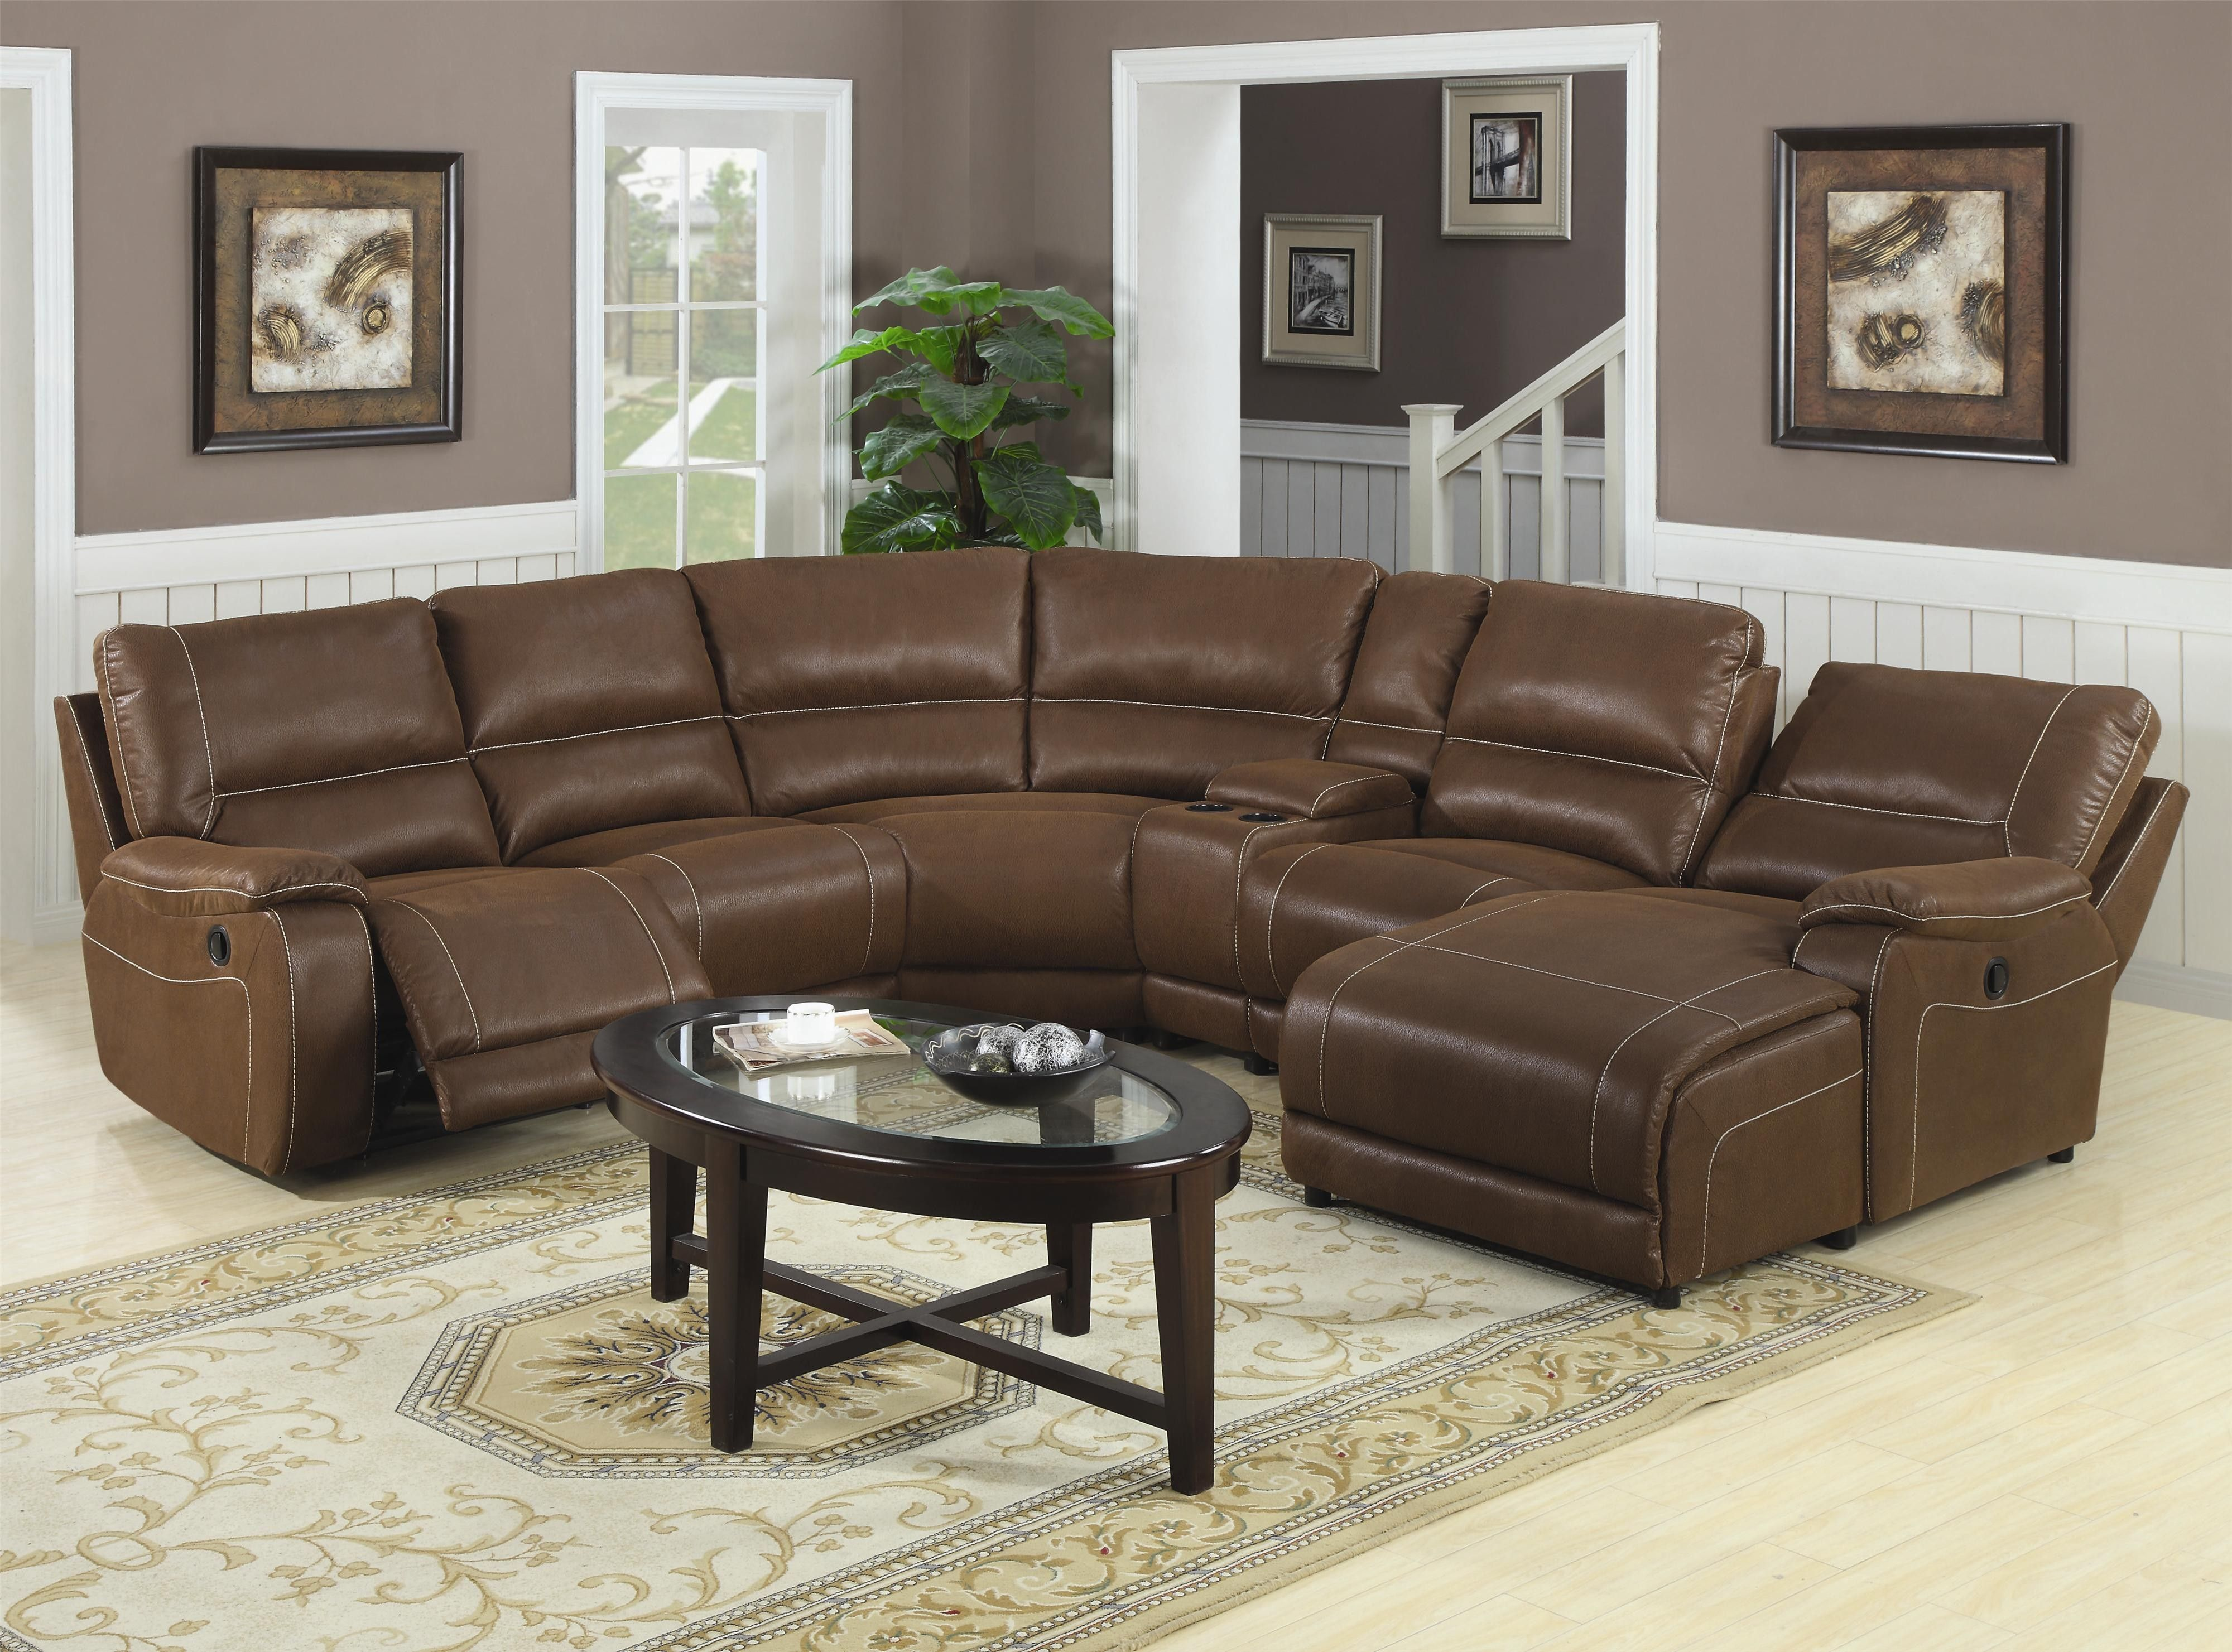 4087 leather sectional sofa with recliners cleaning sofas small reclining